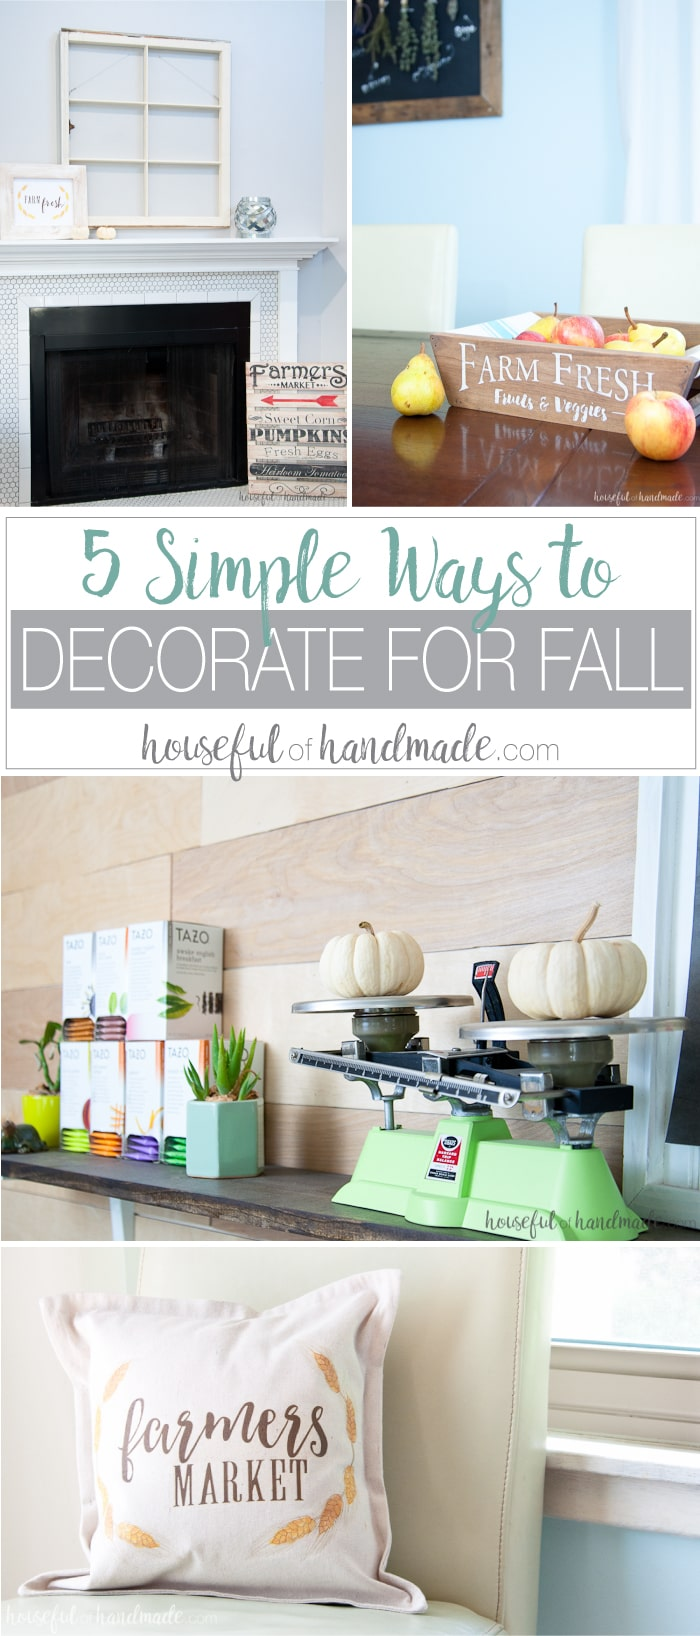 5 simple ways to decorate for fall a houseful of handmade for Simple ways to decorate your home